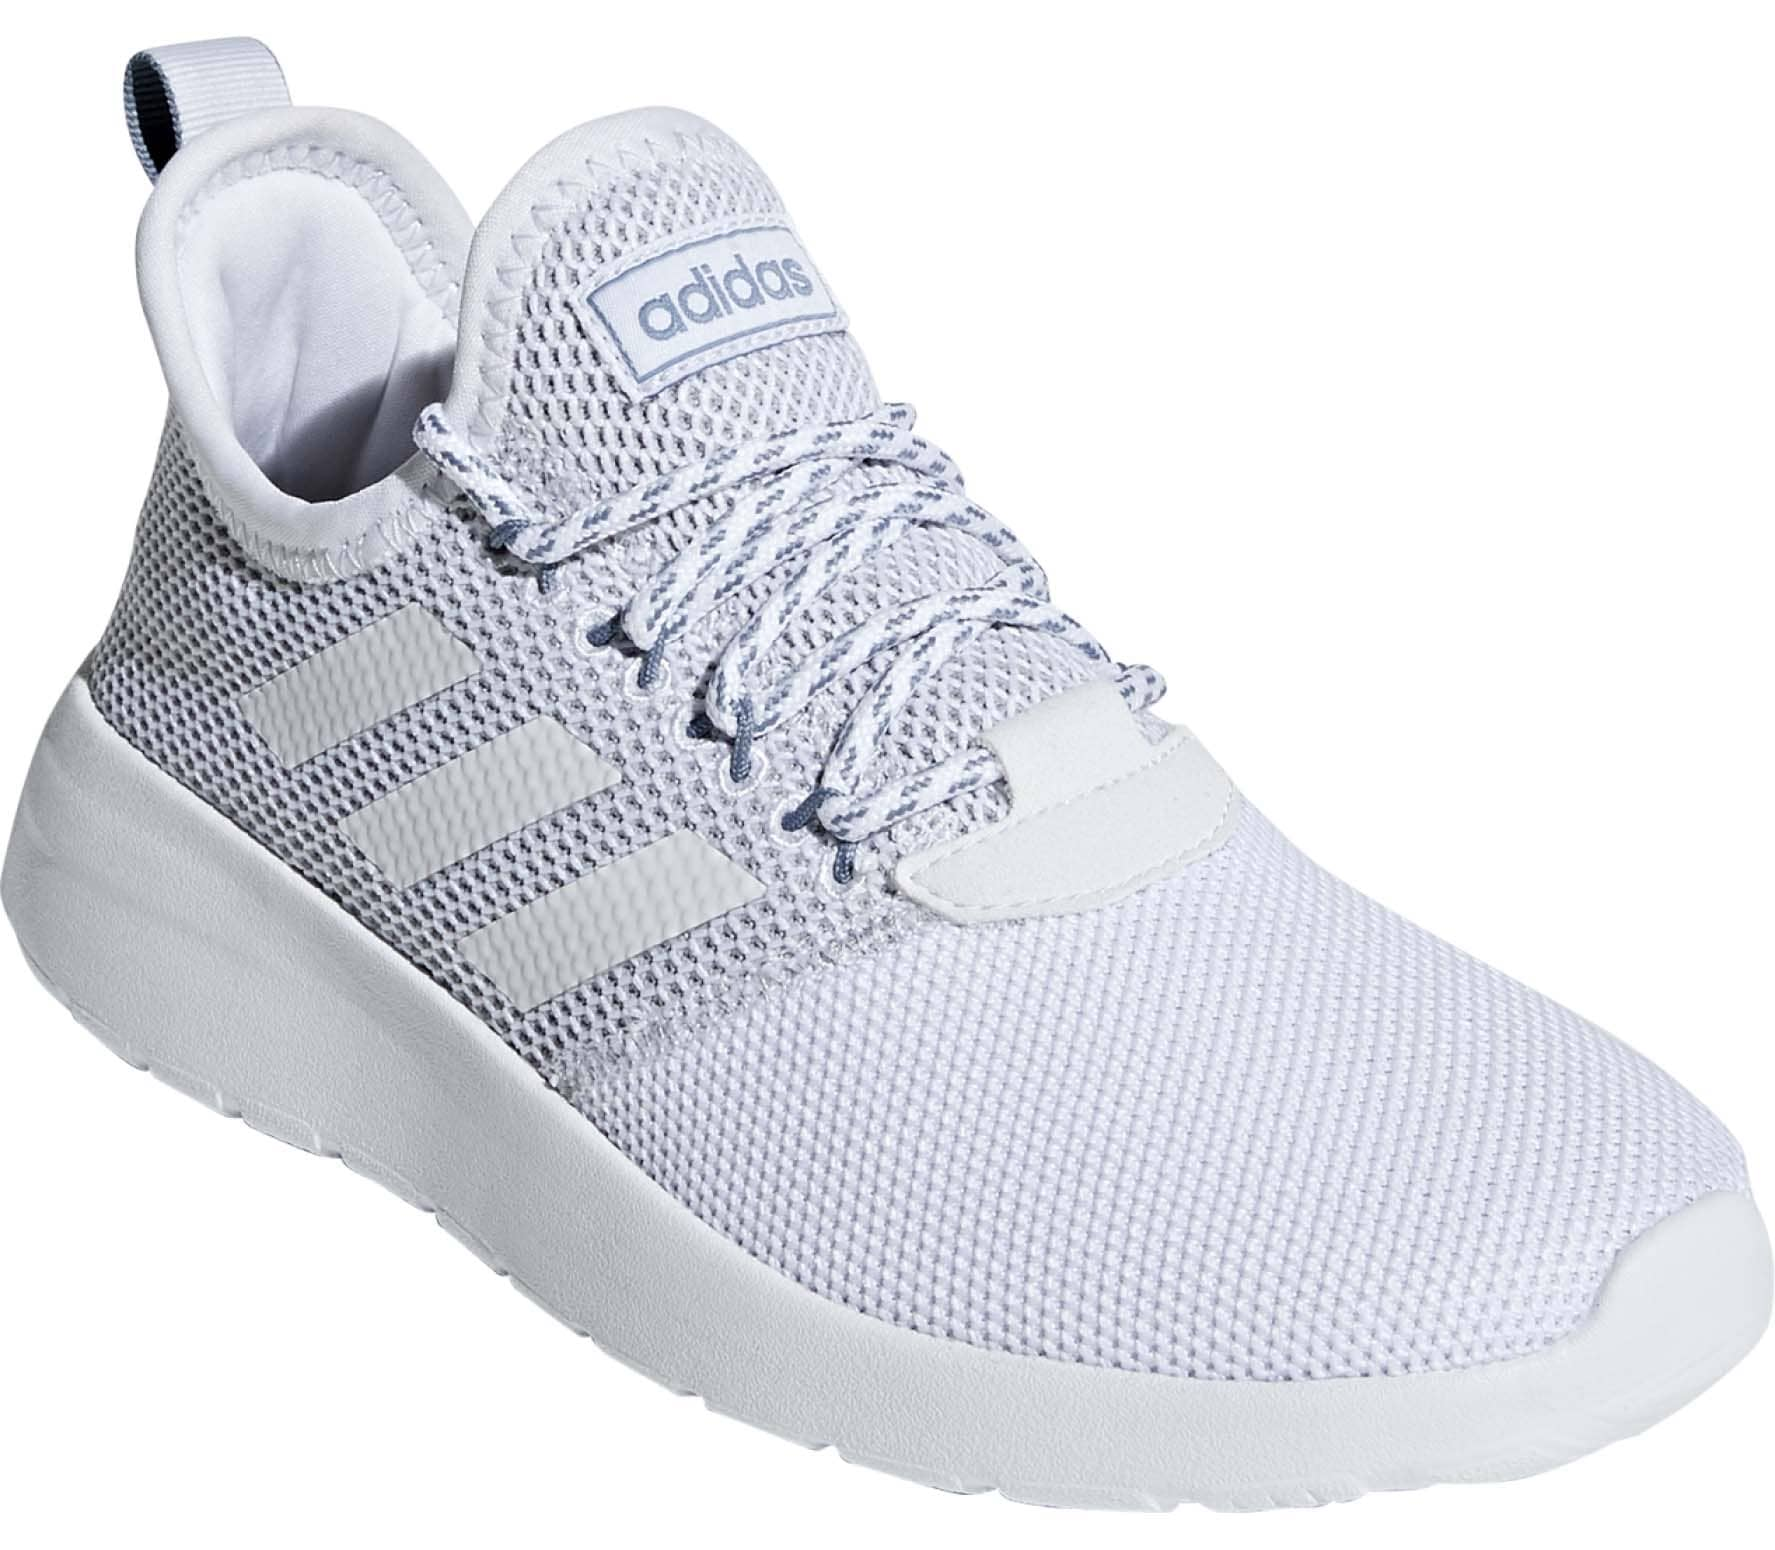 ac850c7d0a9a6 adidas Performance - Lite Racer Rbn Mujer Zapatos para correr (blanco)